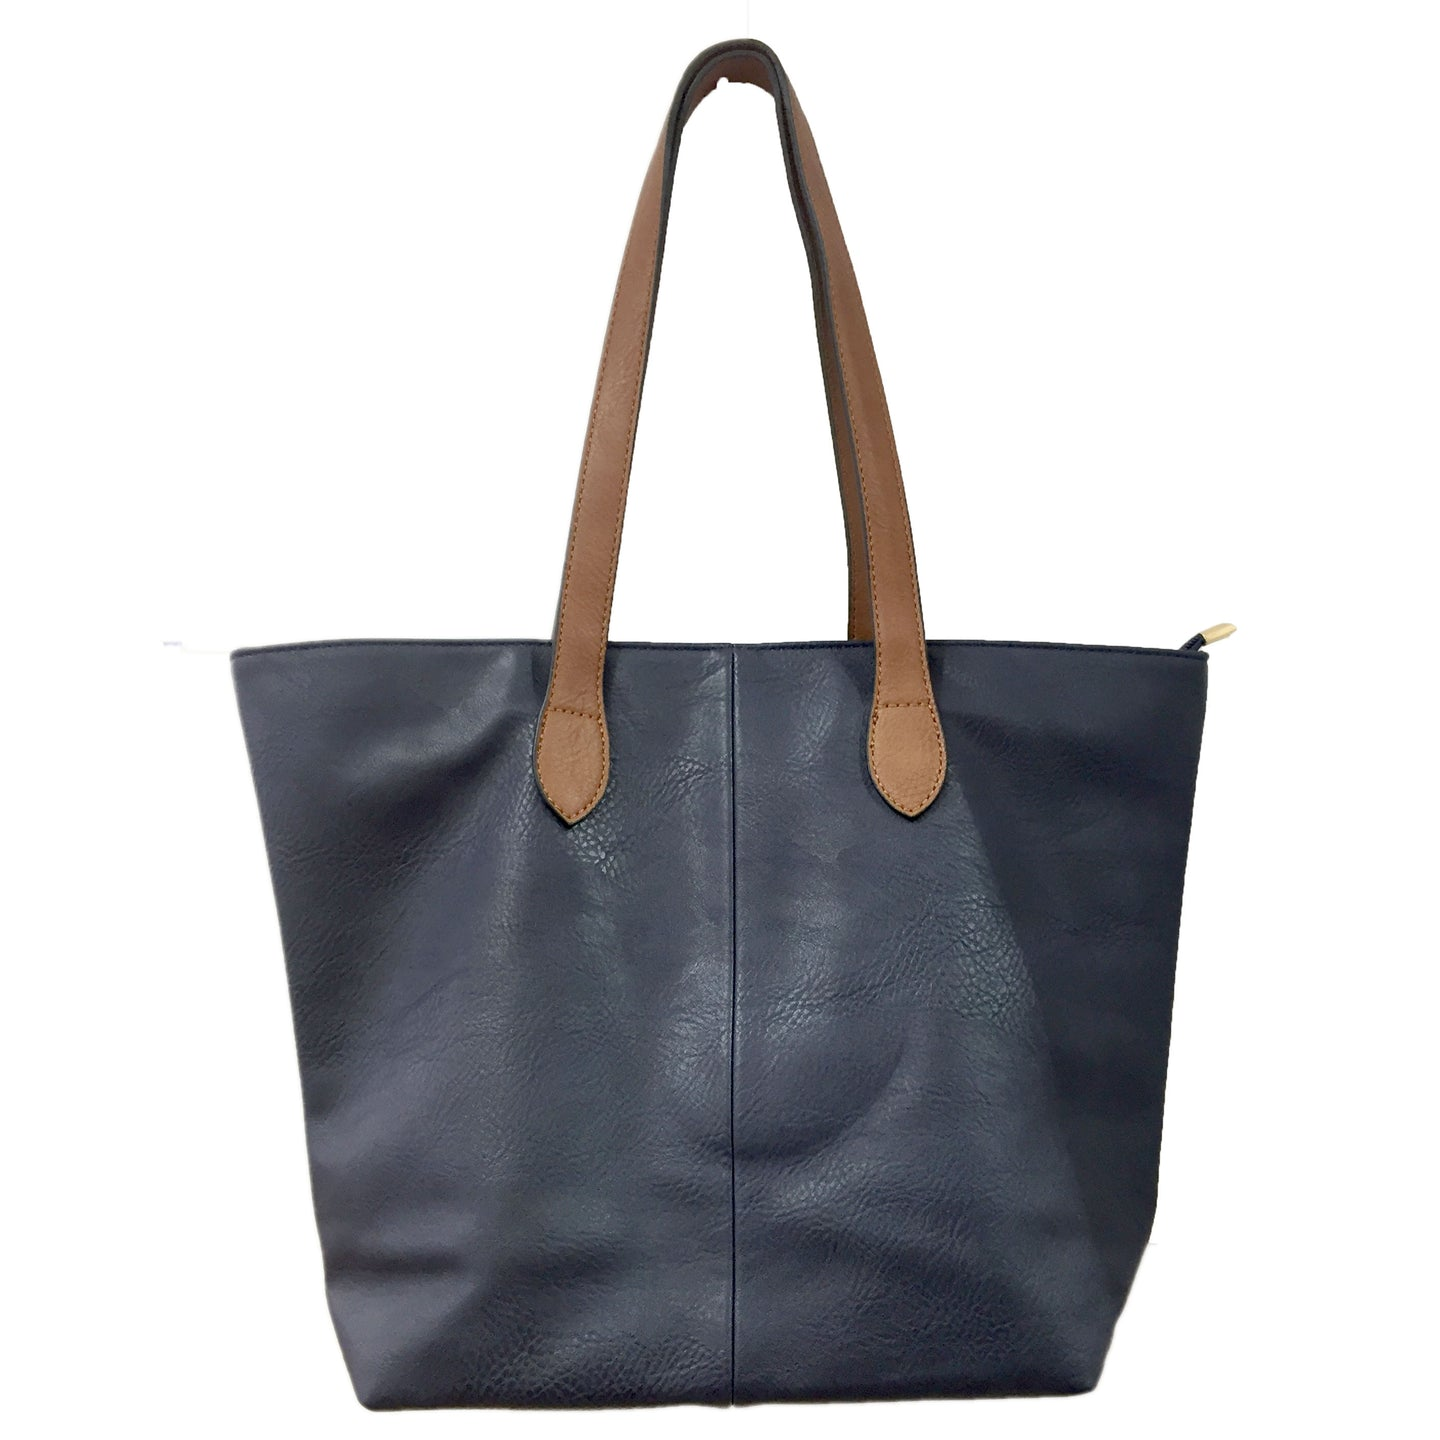 Navy Blue Shopper Bag- Tote handbag